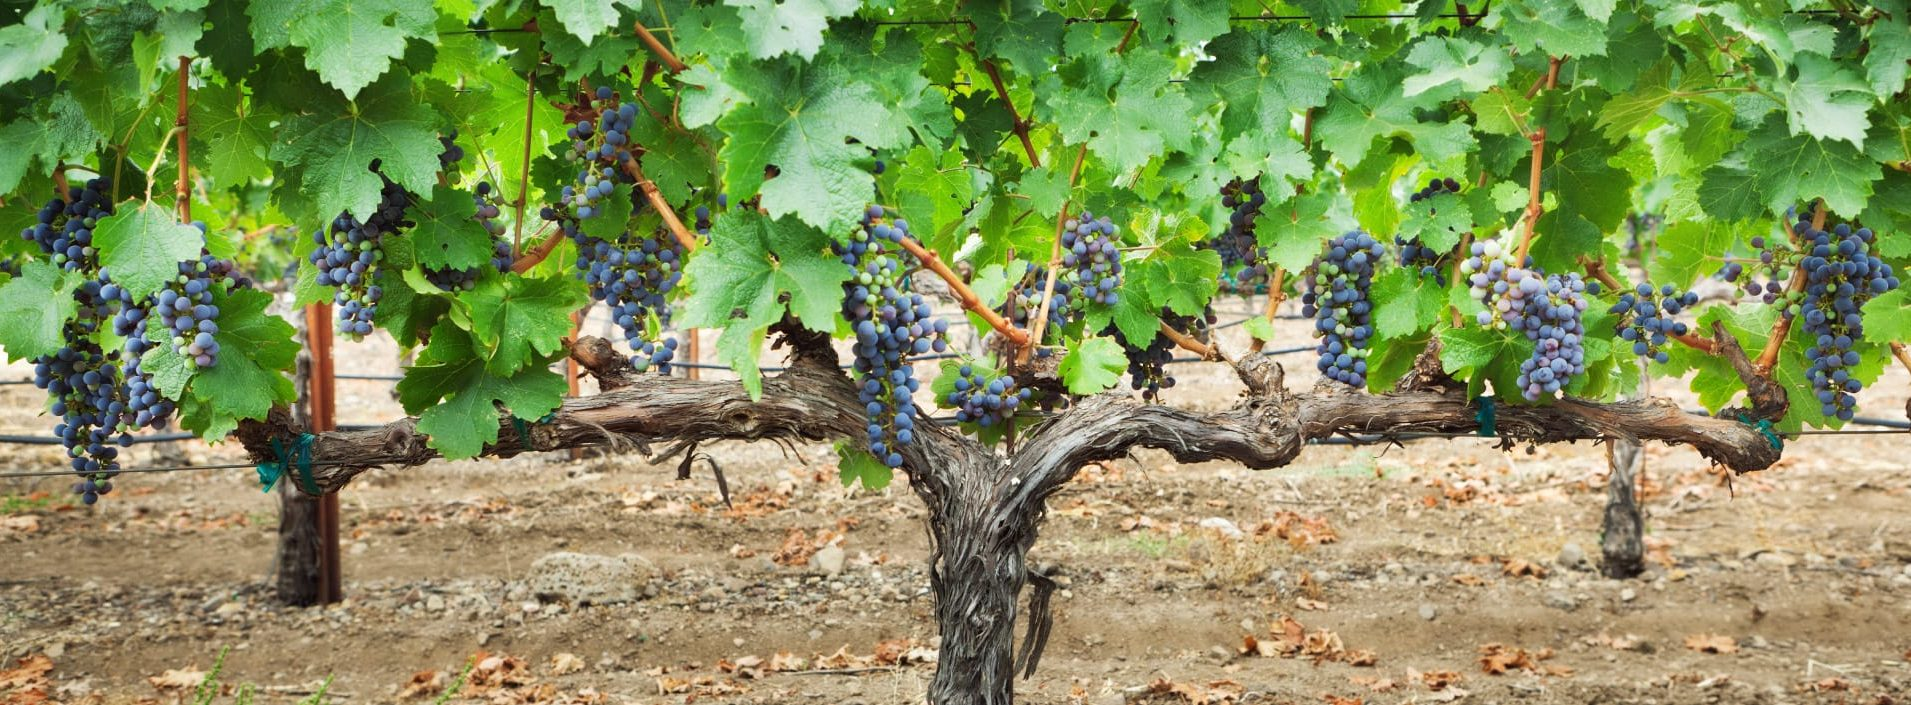 Wine grape in vineyard